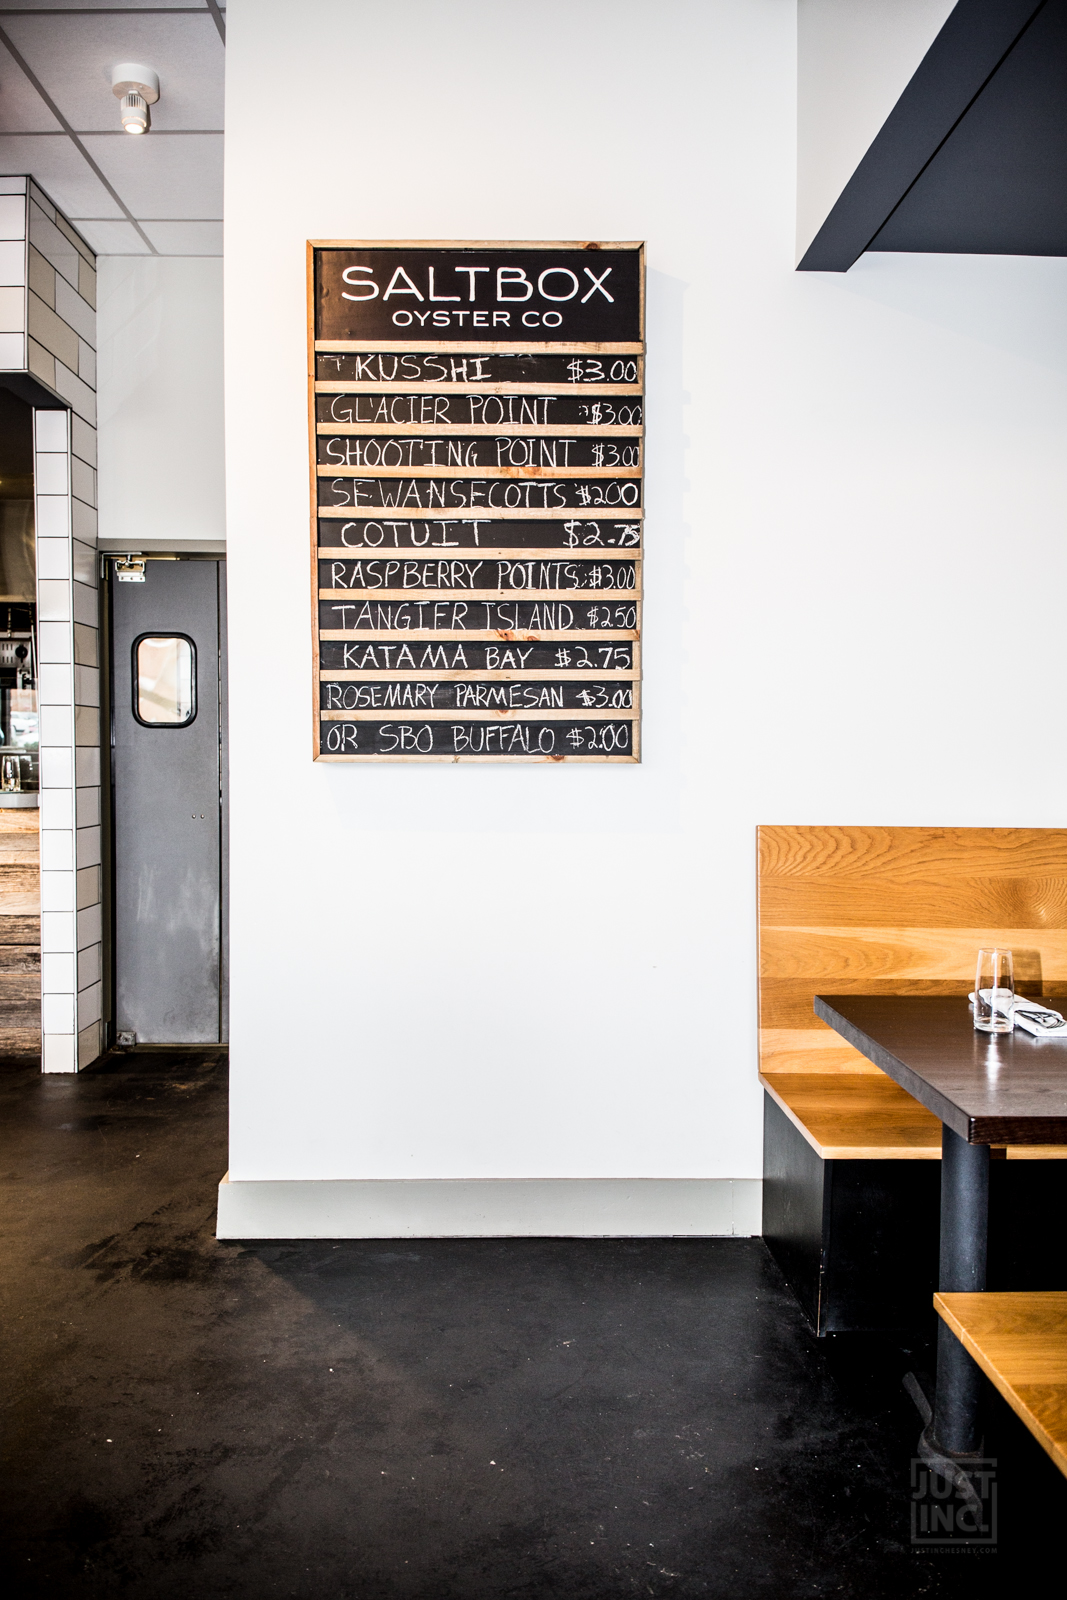 salt box oyster co. - @therealjustinc-1001.jpg